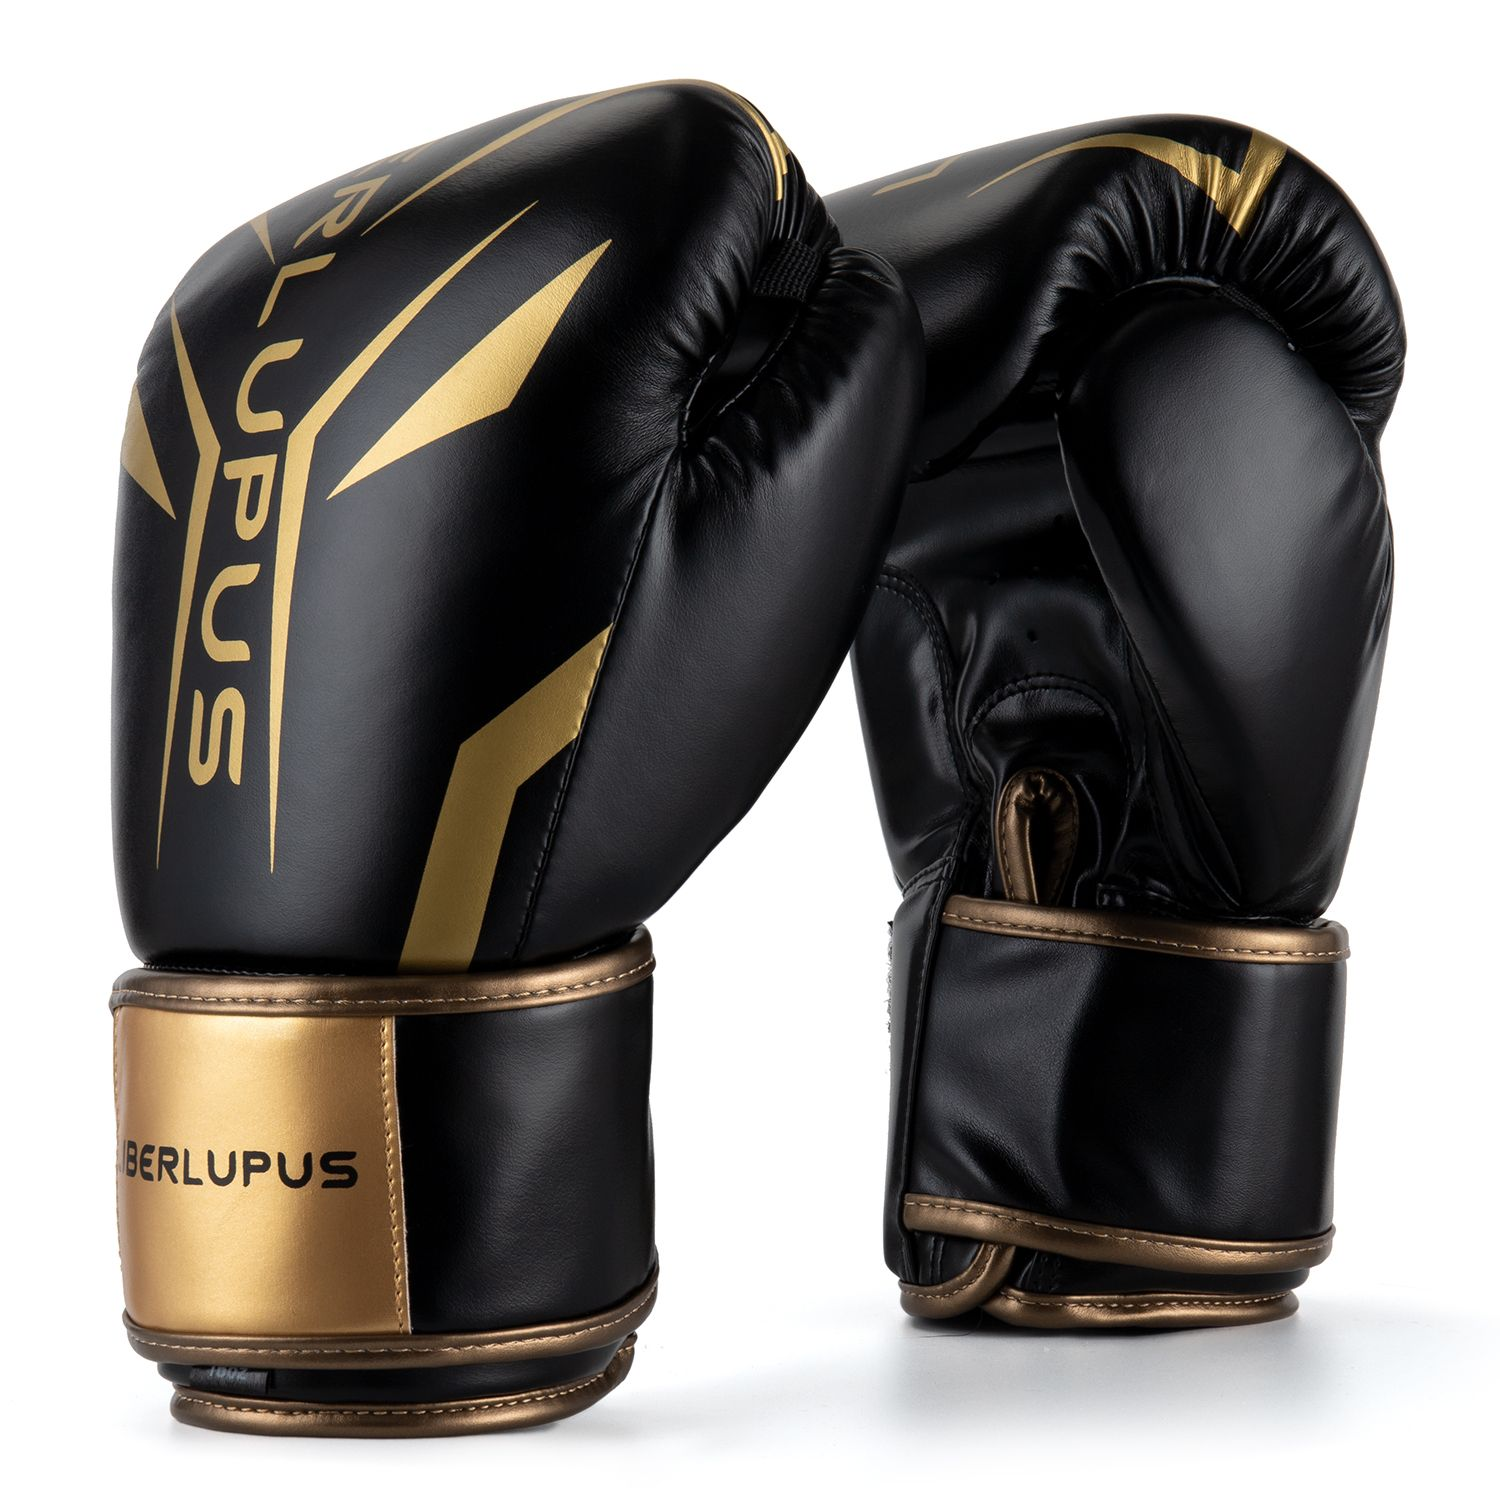 Liberlupus Boxing Gloves For Men Women Boxing Training Gloves Kickboxing Gloves Sparring Gloves In 2020 Boxing Gloves Boxing Training Heavy Bag Gloves